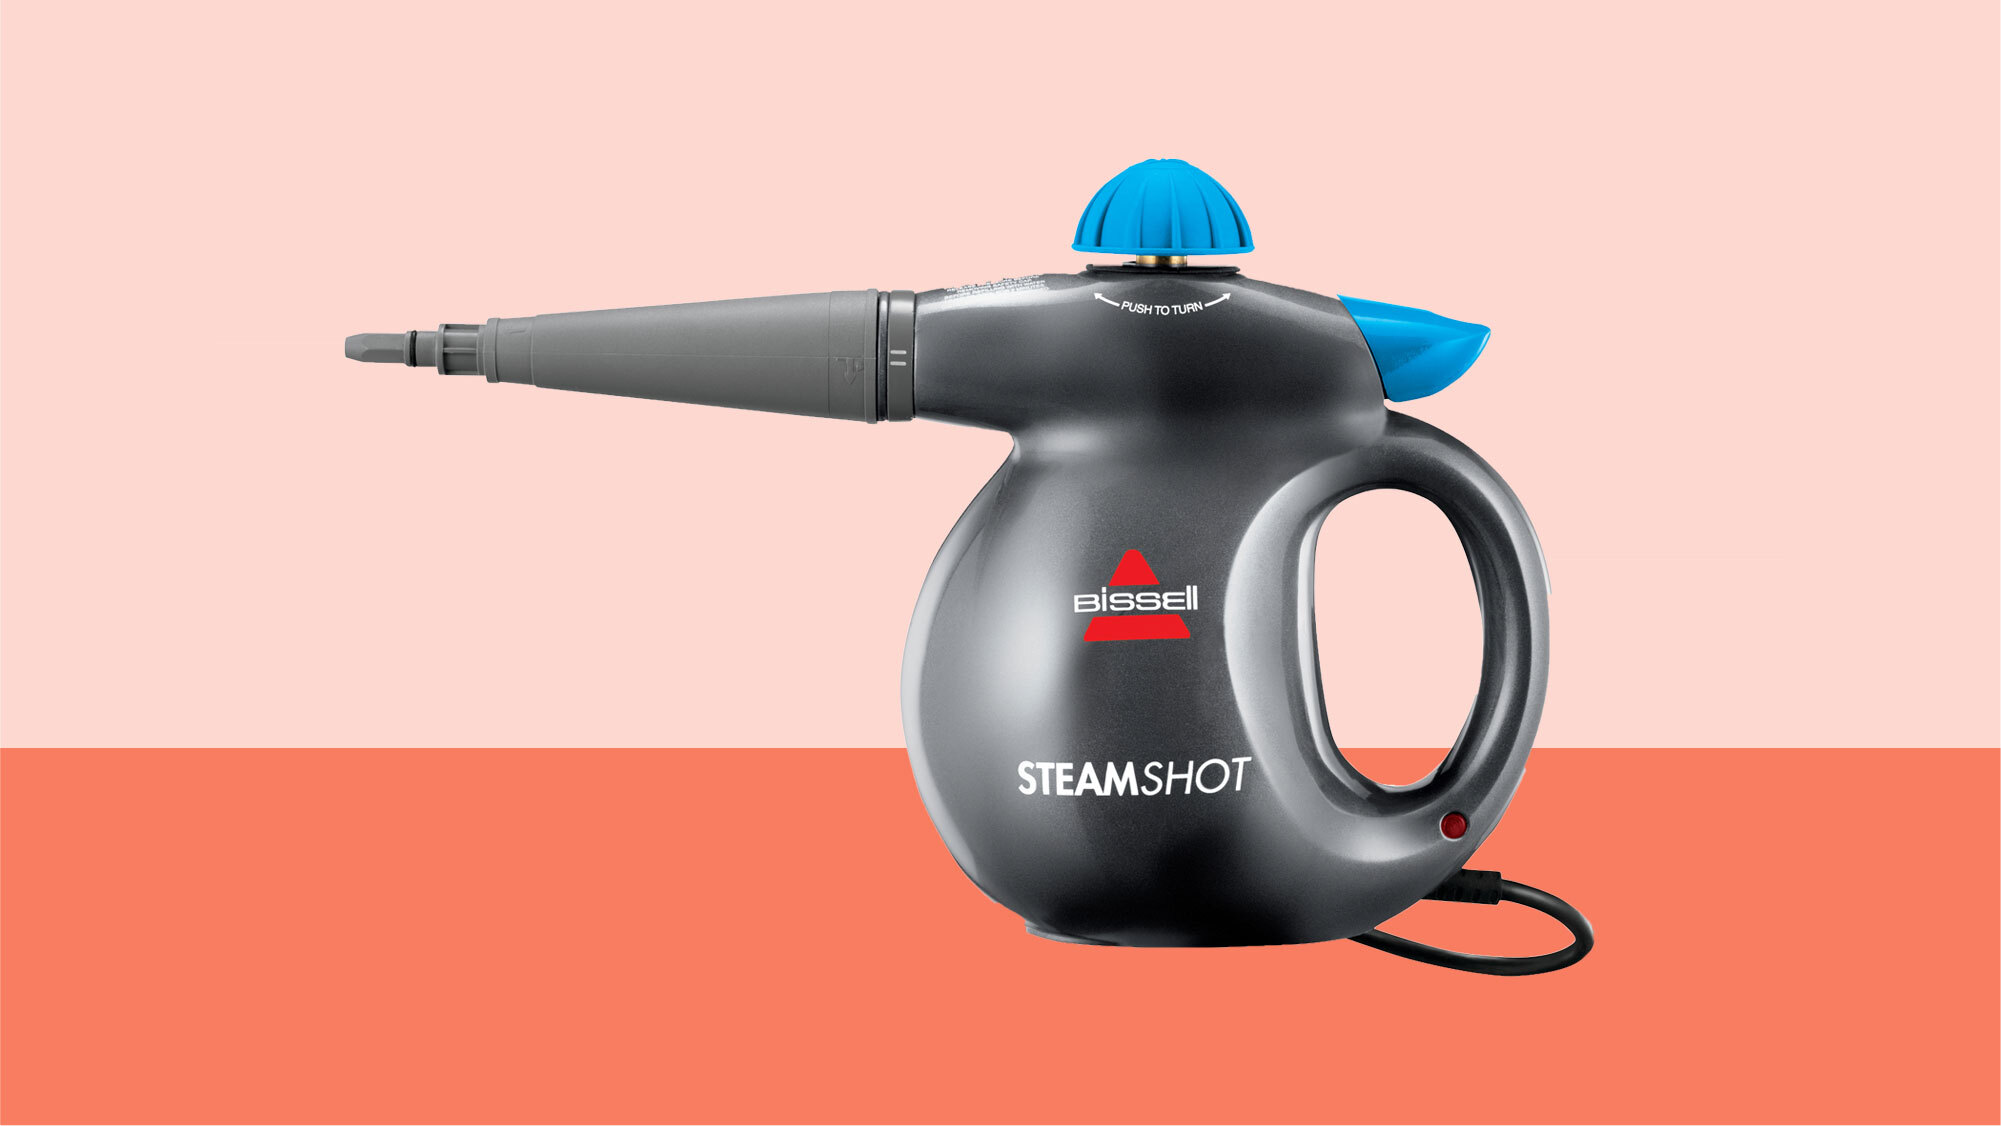 Time Saving Amazon Finds 2021: Bissell SteamShot Steam Cleaner